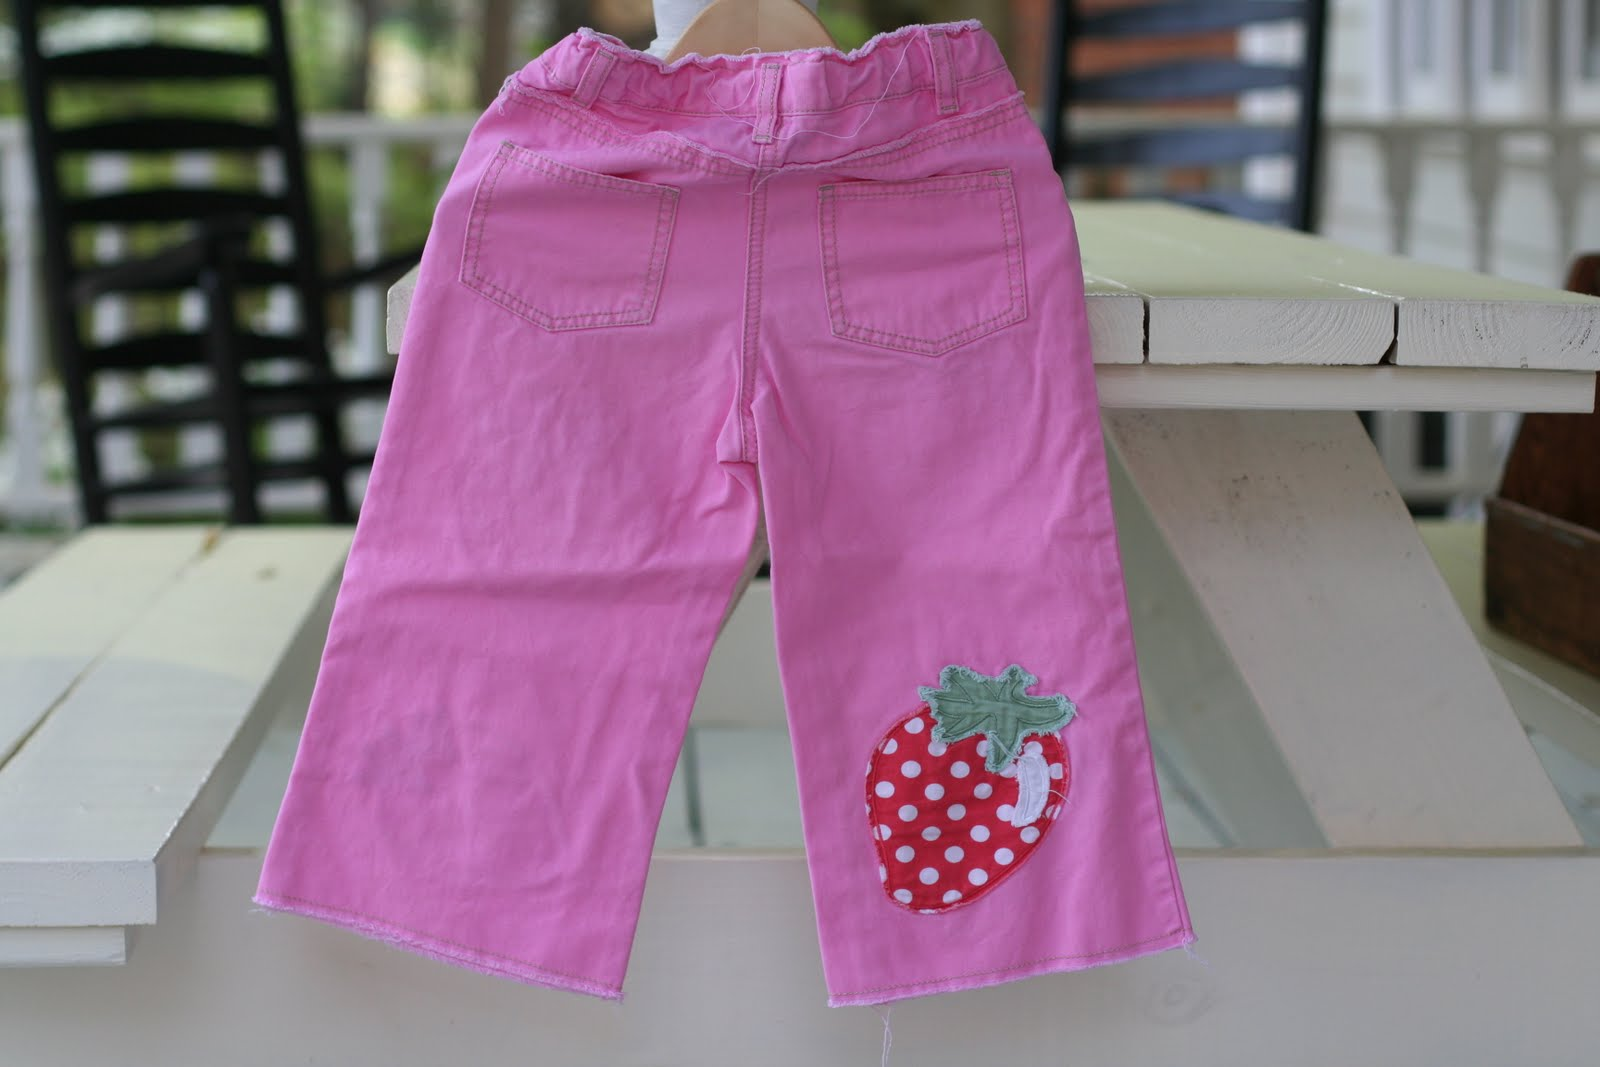 Simple thoughts lilly pulitzer items more for sale for Mini boden direct